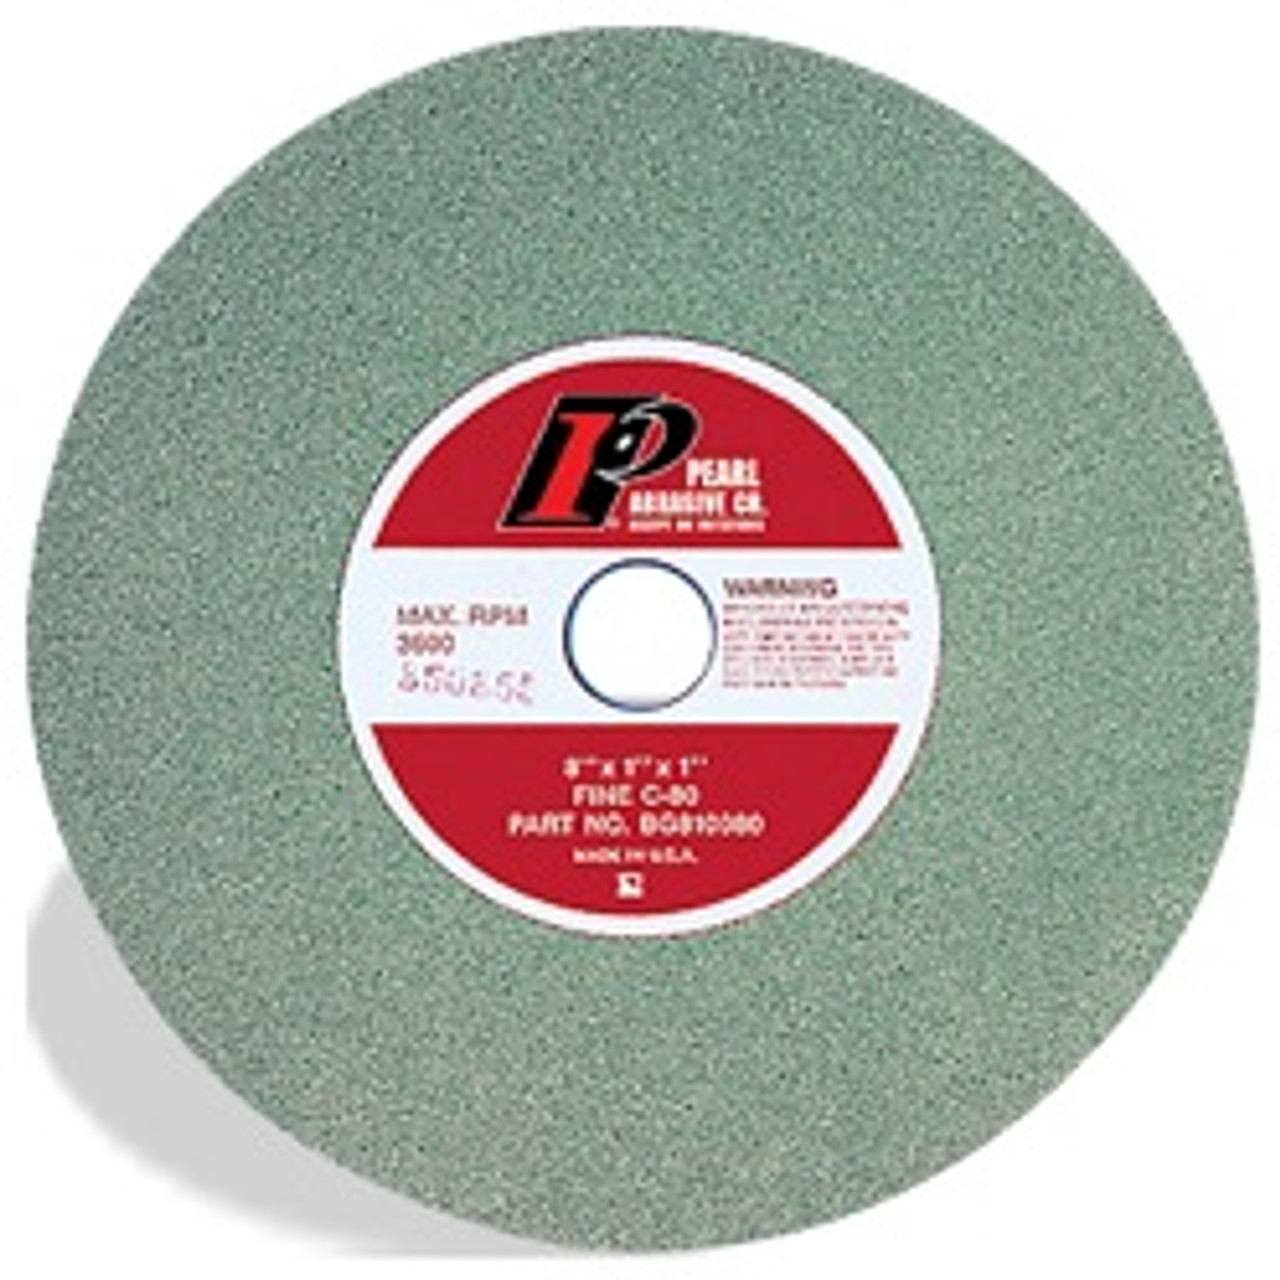 "Green SC Bench Grinding Wheels for Metal, 6"" x 3/4"" x 1"", Type 1 Shape C80"